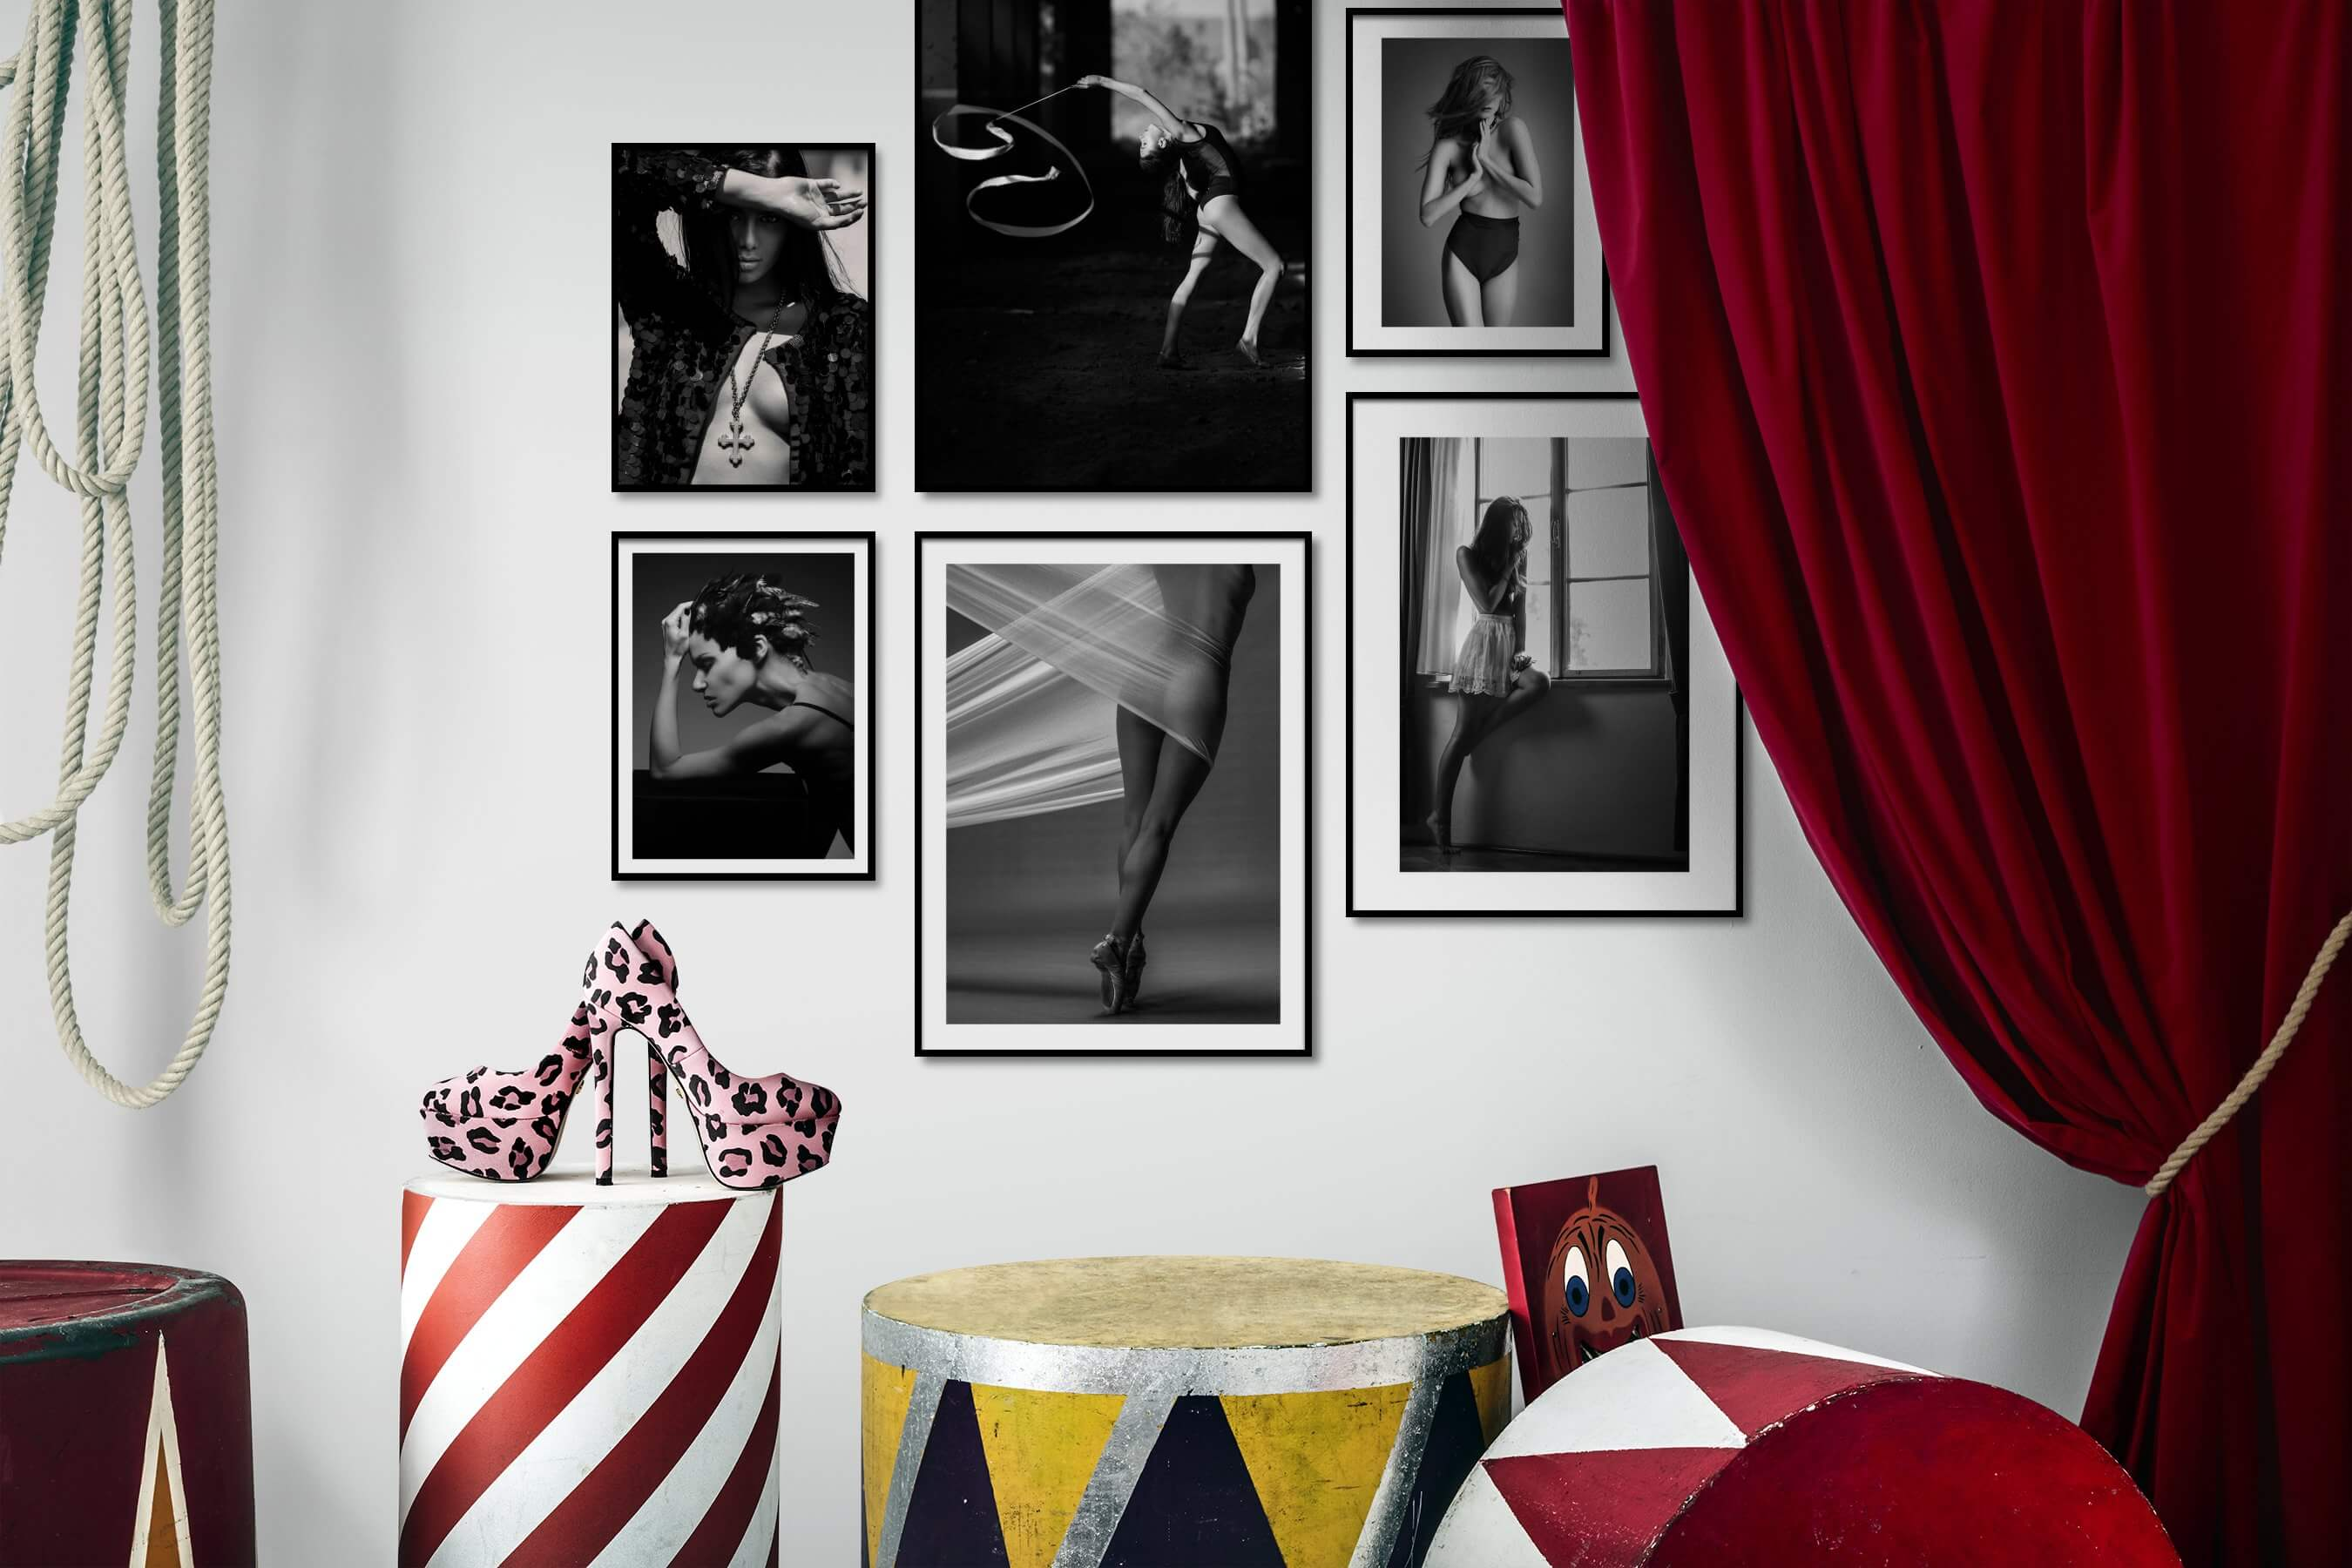 Gallery wall idea with six framed pictures arranged on a wall depicting Fashion & Beauty, Black & White, Vintage, Dark Tones, and For the Moderate